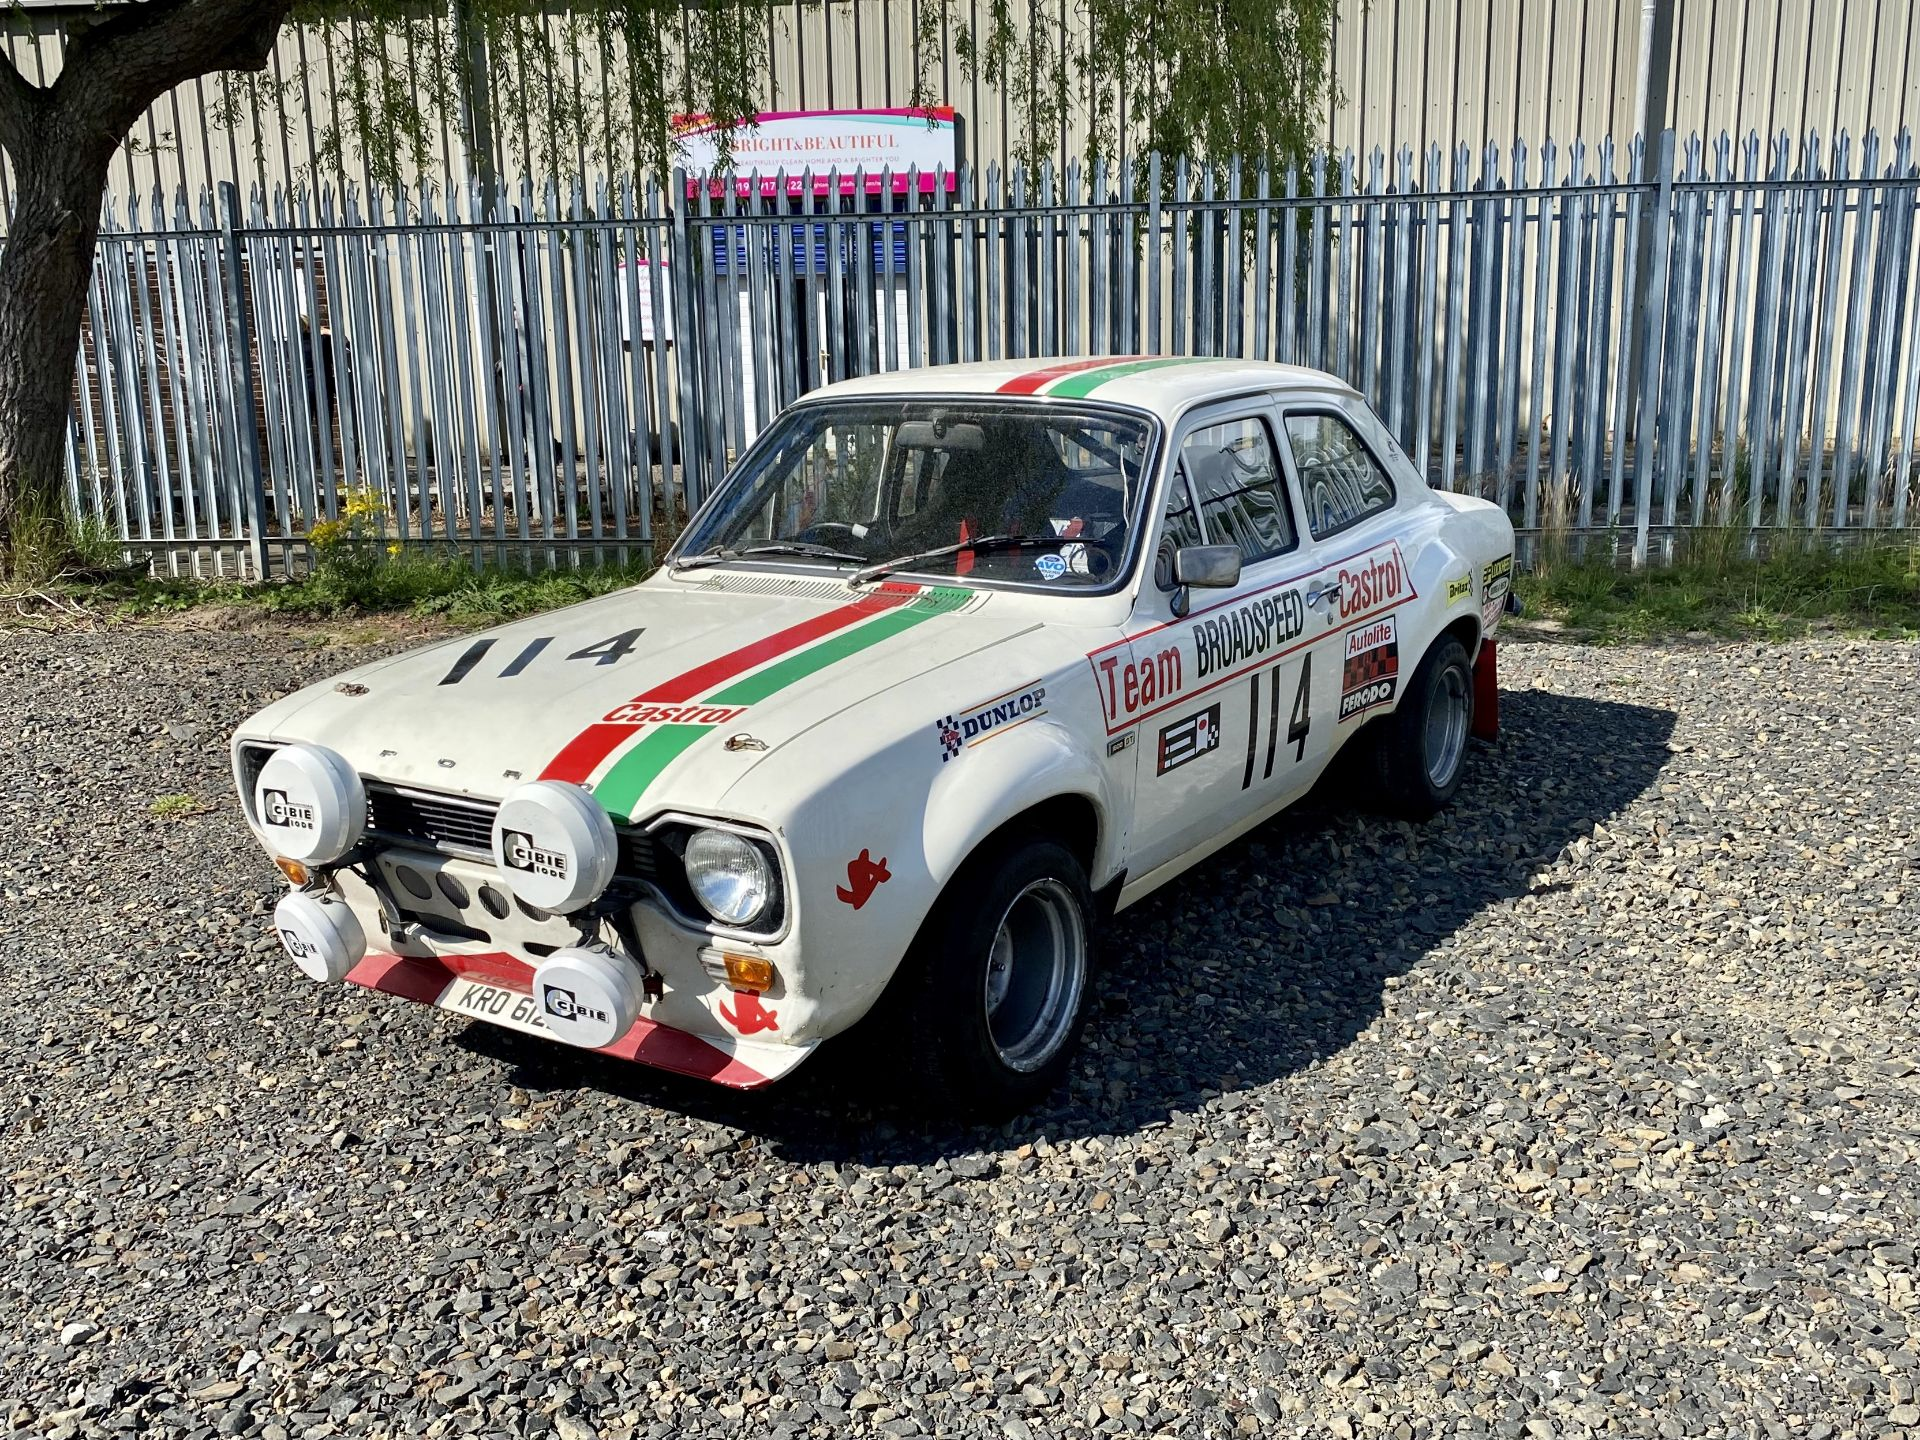 Ford Escort Mexico - Image 24 of 51